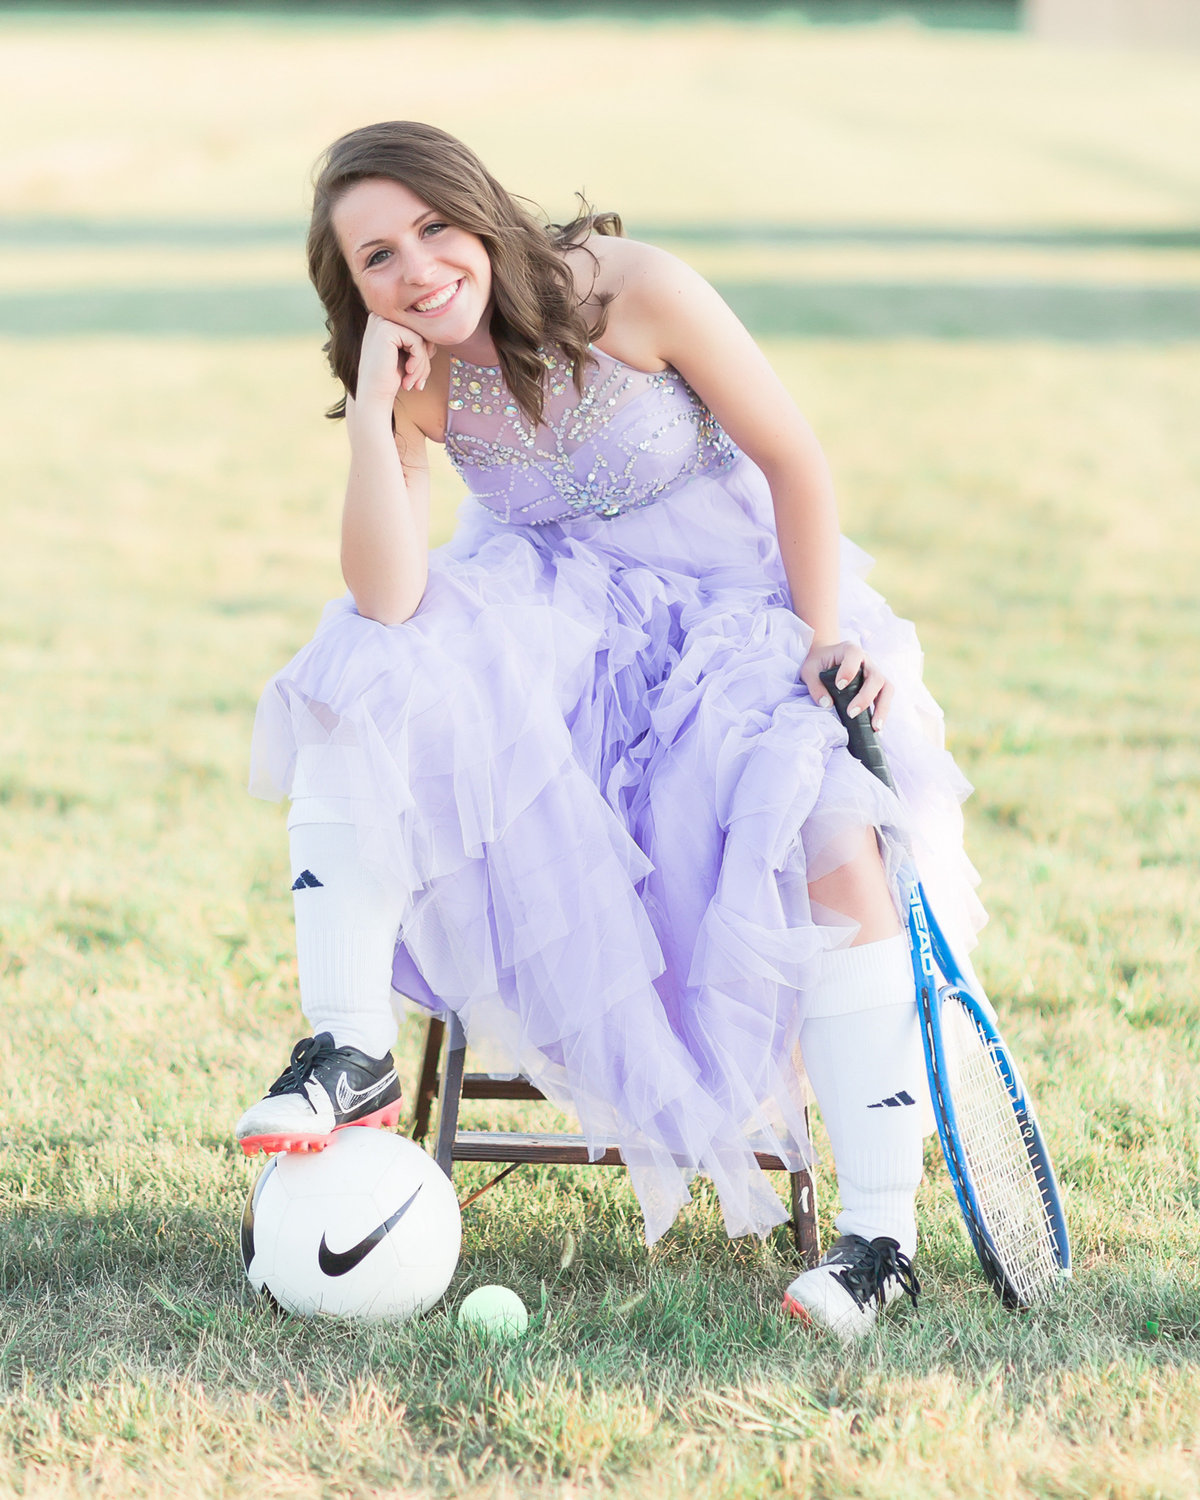 Senior girl-lavender prom dress and sports equipment-soccer and tennis